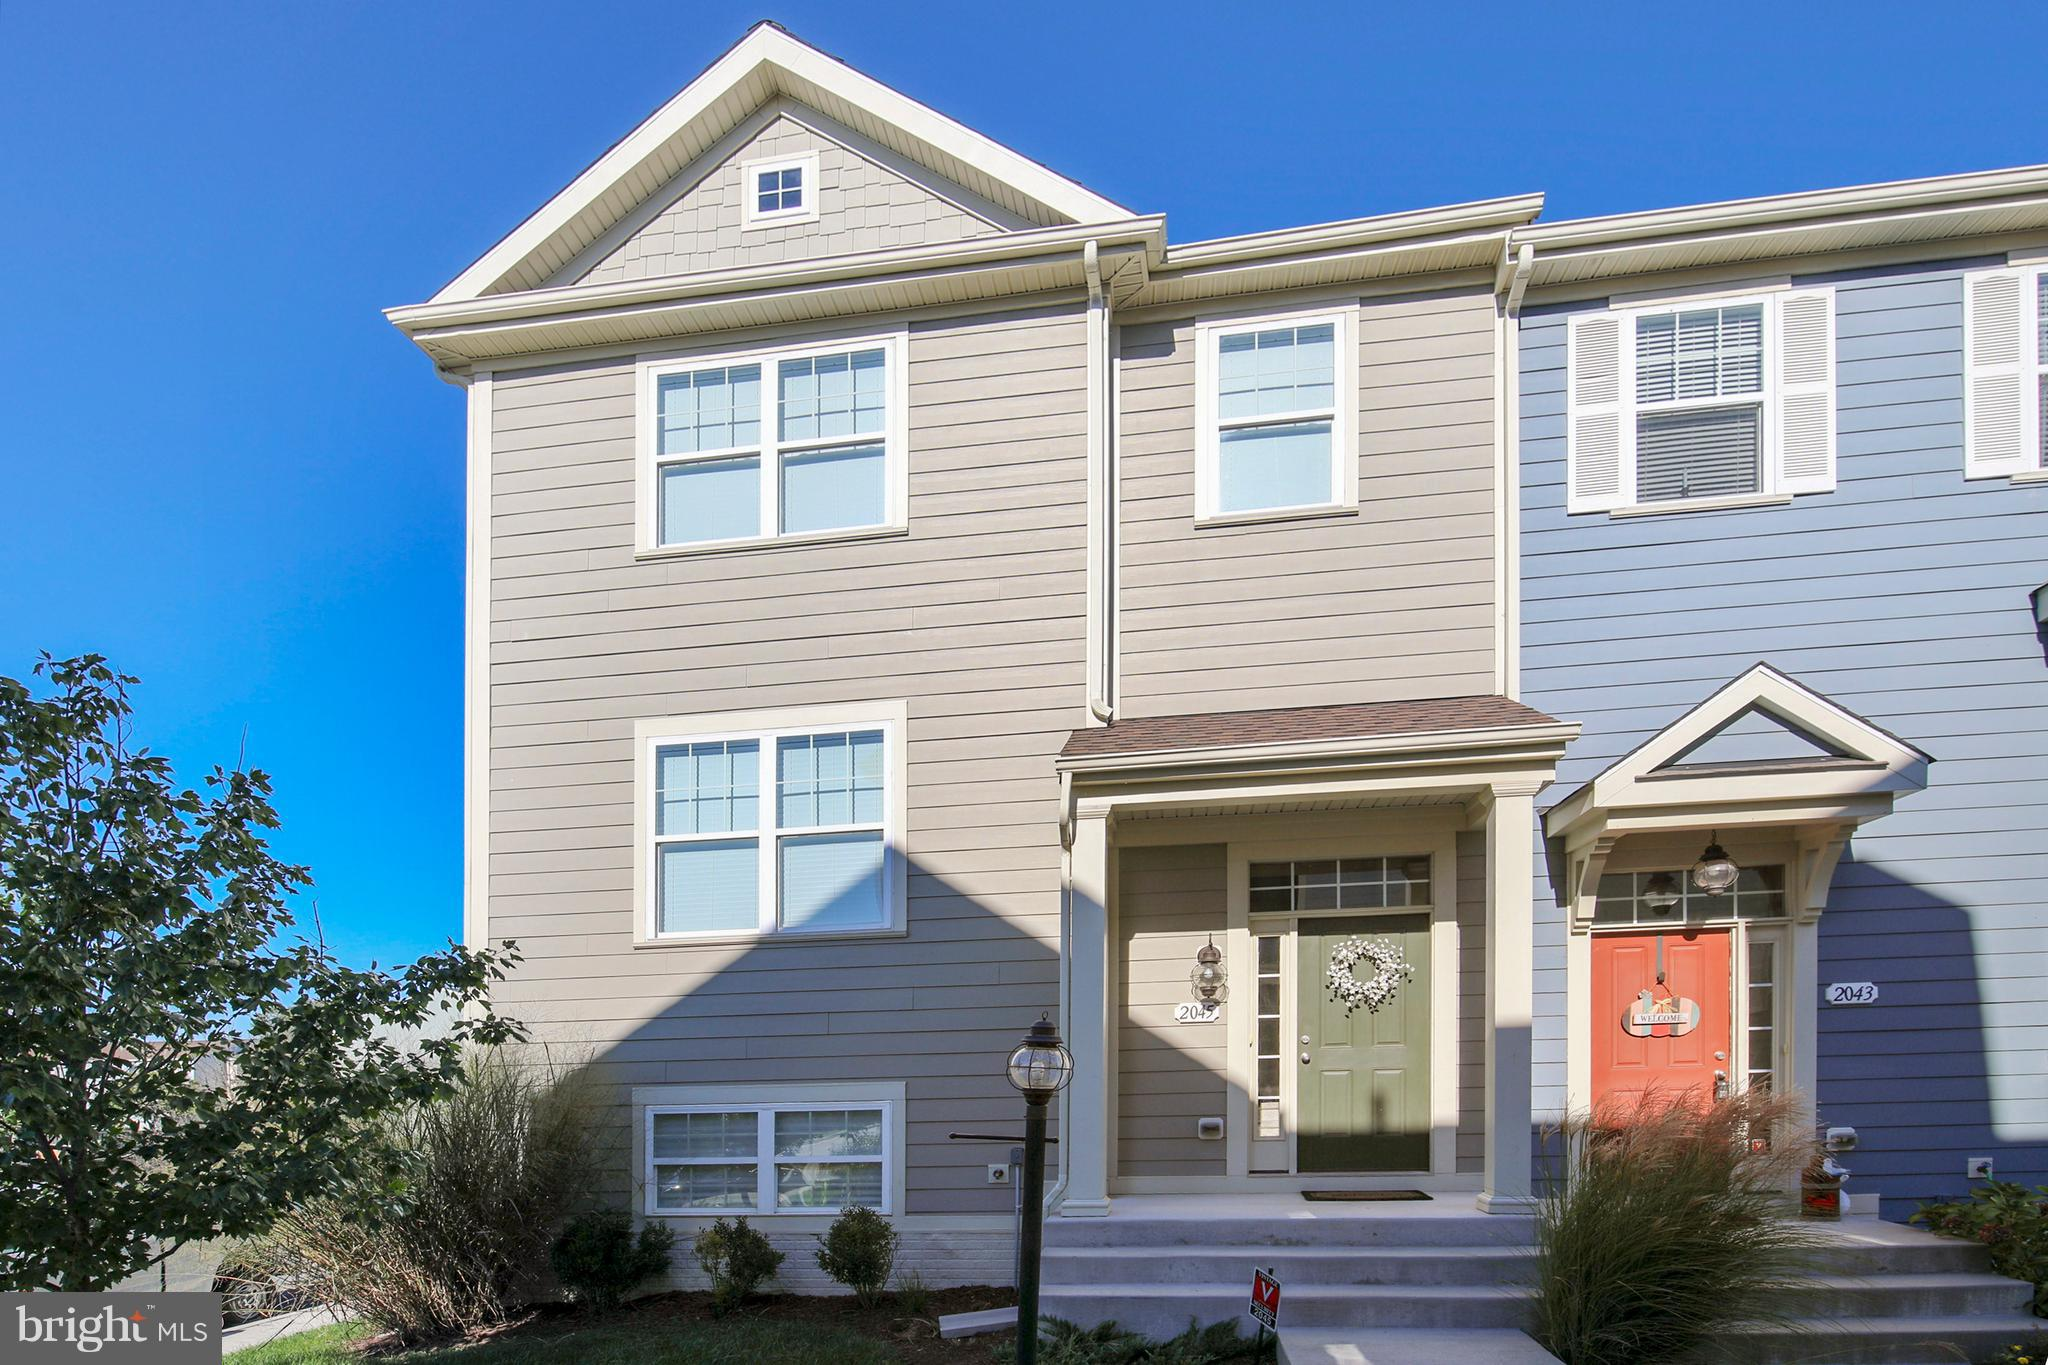 2045 CASE ROAD, BALTIMORE, MD 21222